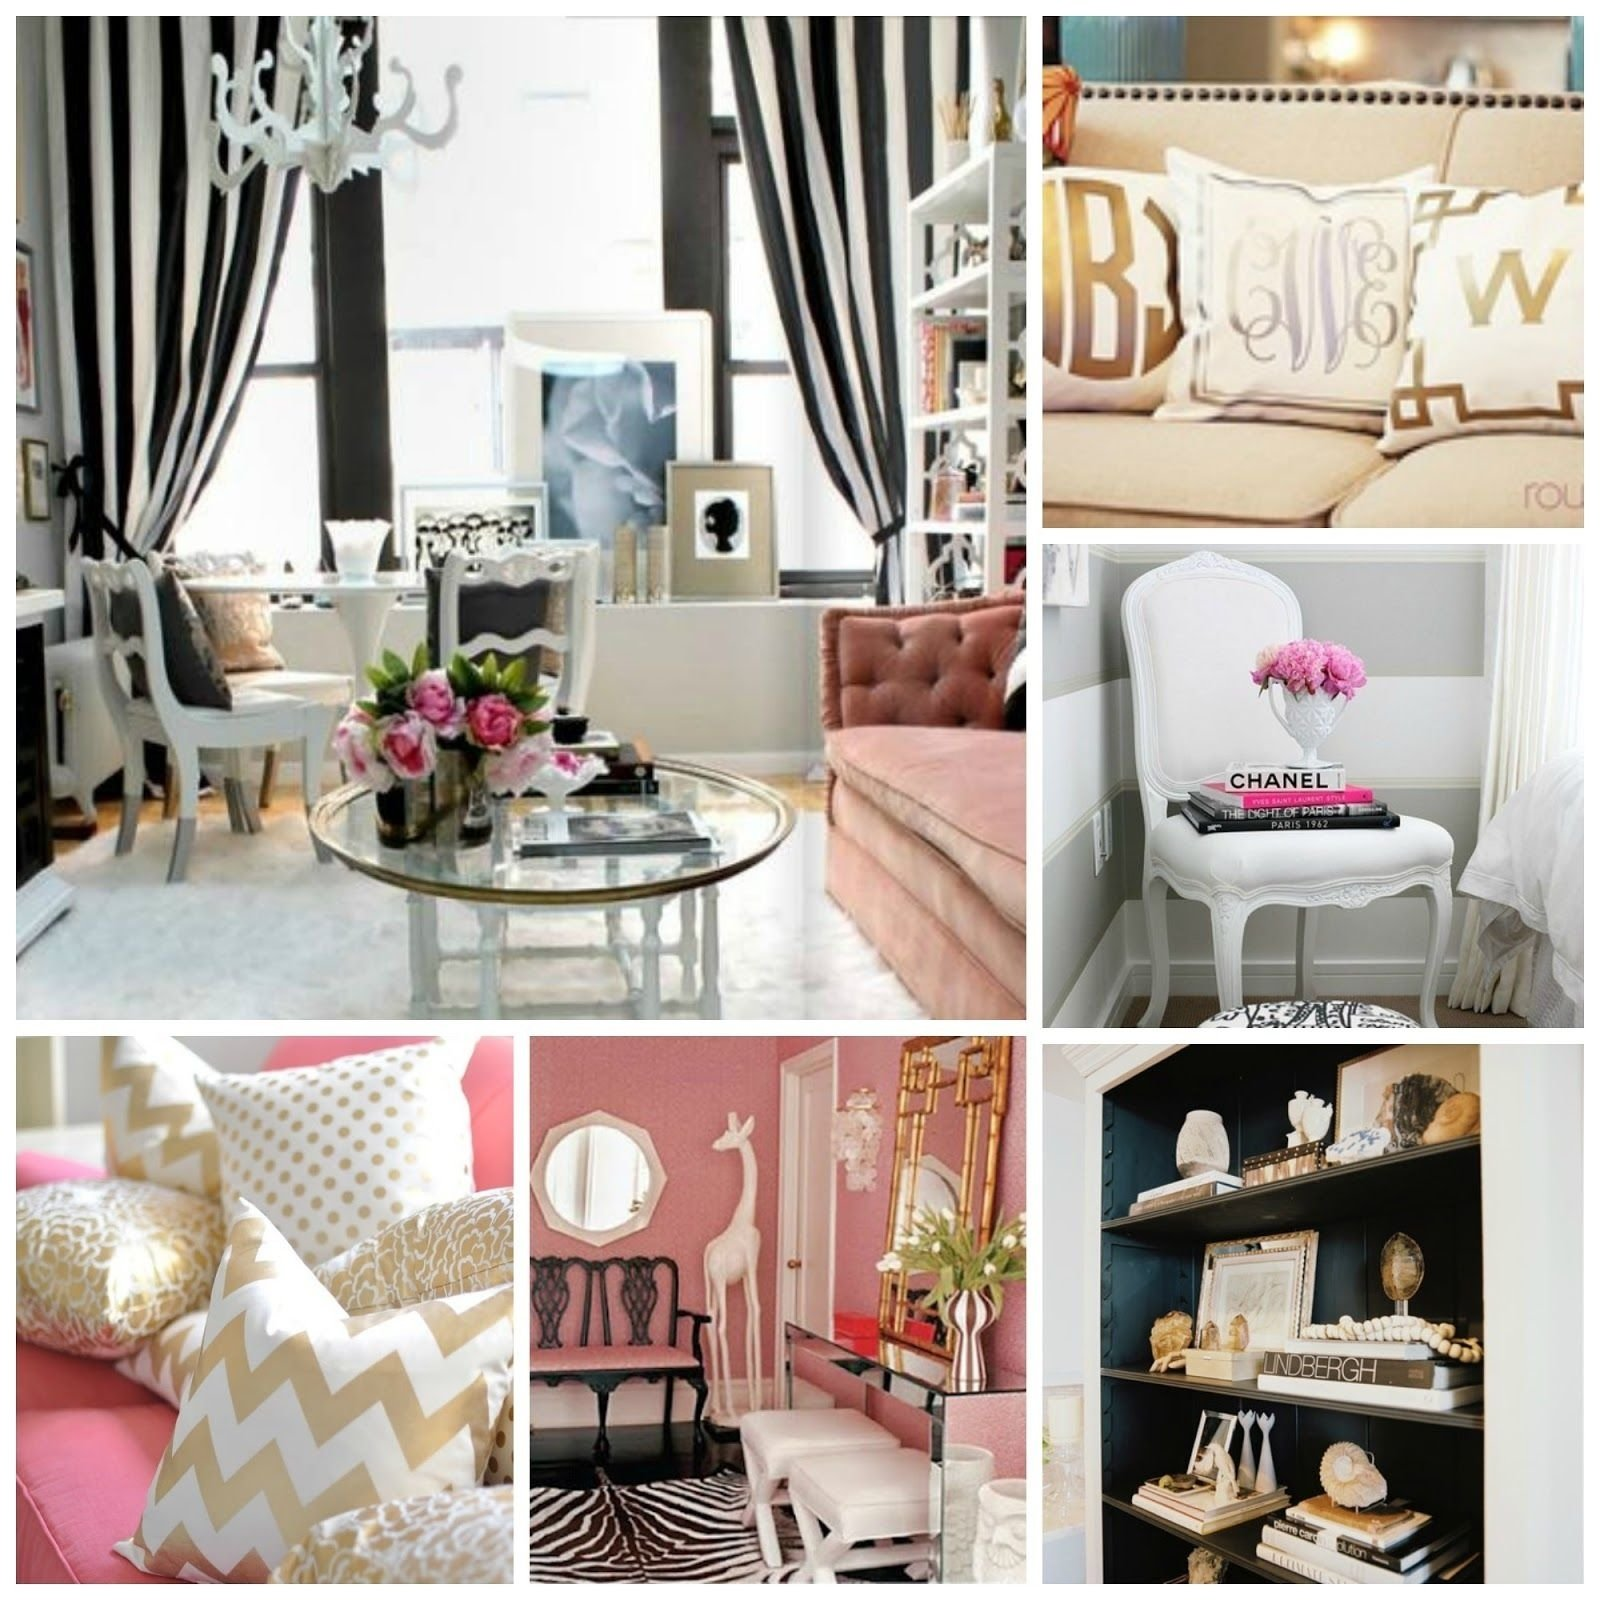 10 Nice Pink Black And White Bedroom Ideas nice white and gold bedroom ideas pink black white and gold room 2020